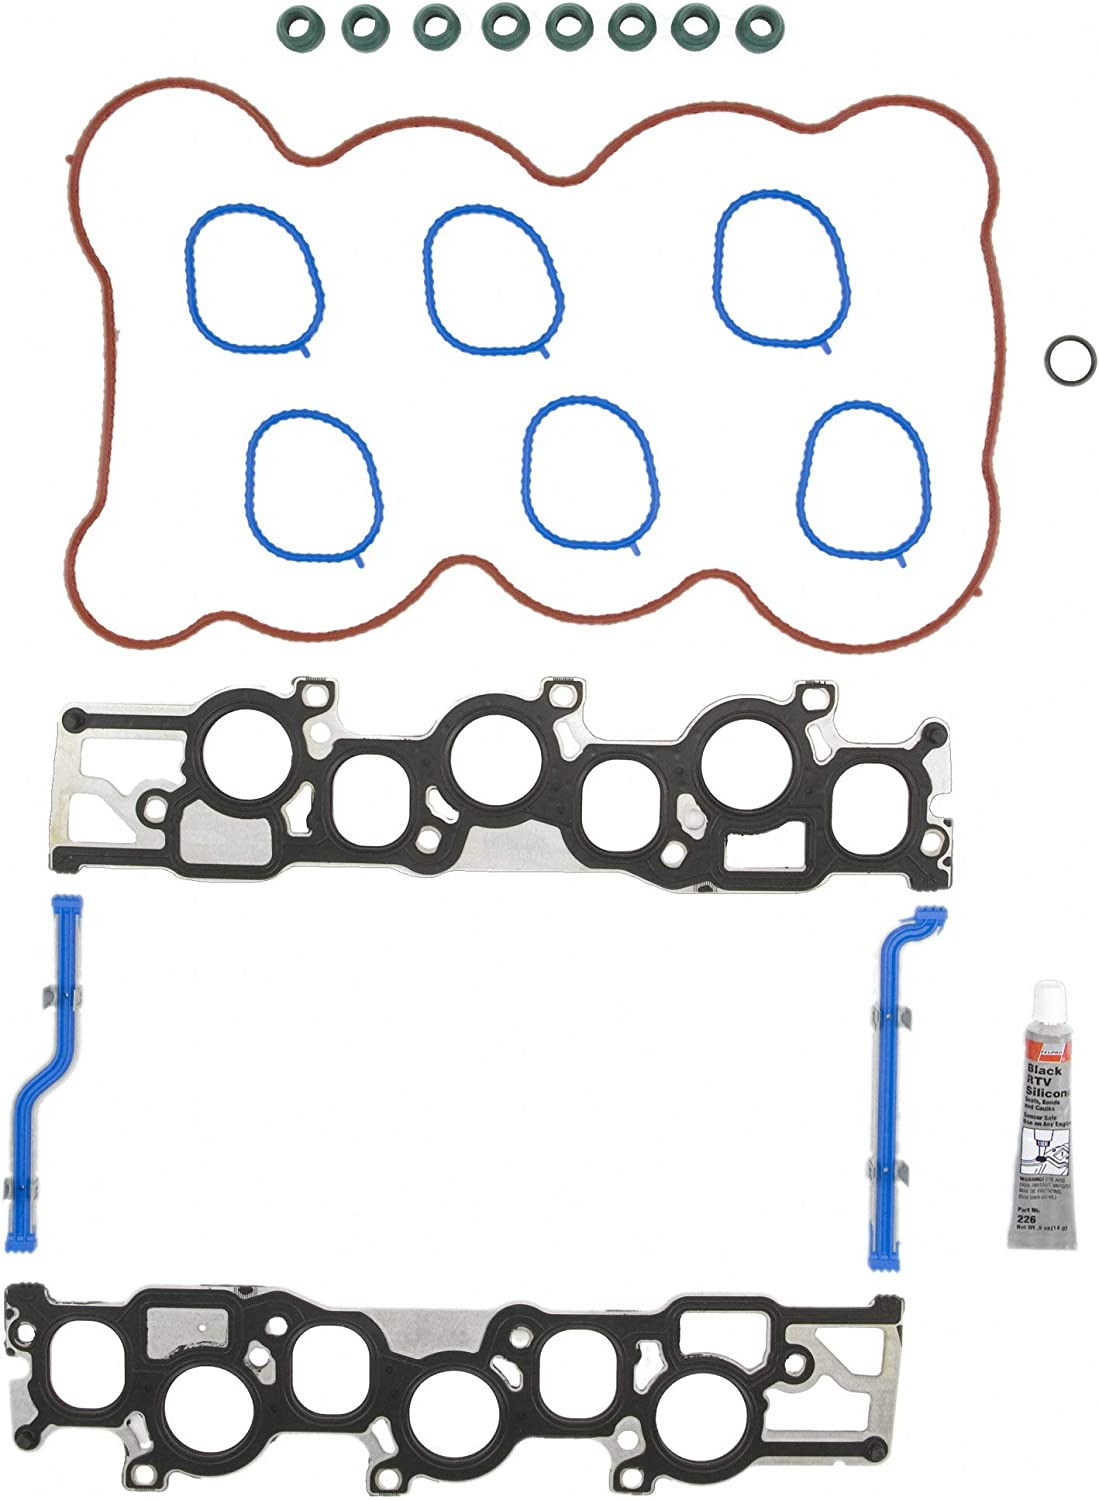 Max 74% OFF Directly managed store FEL-PRO MS 98011 T-1 Intake Set Manifold Gasket